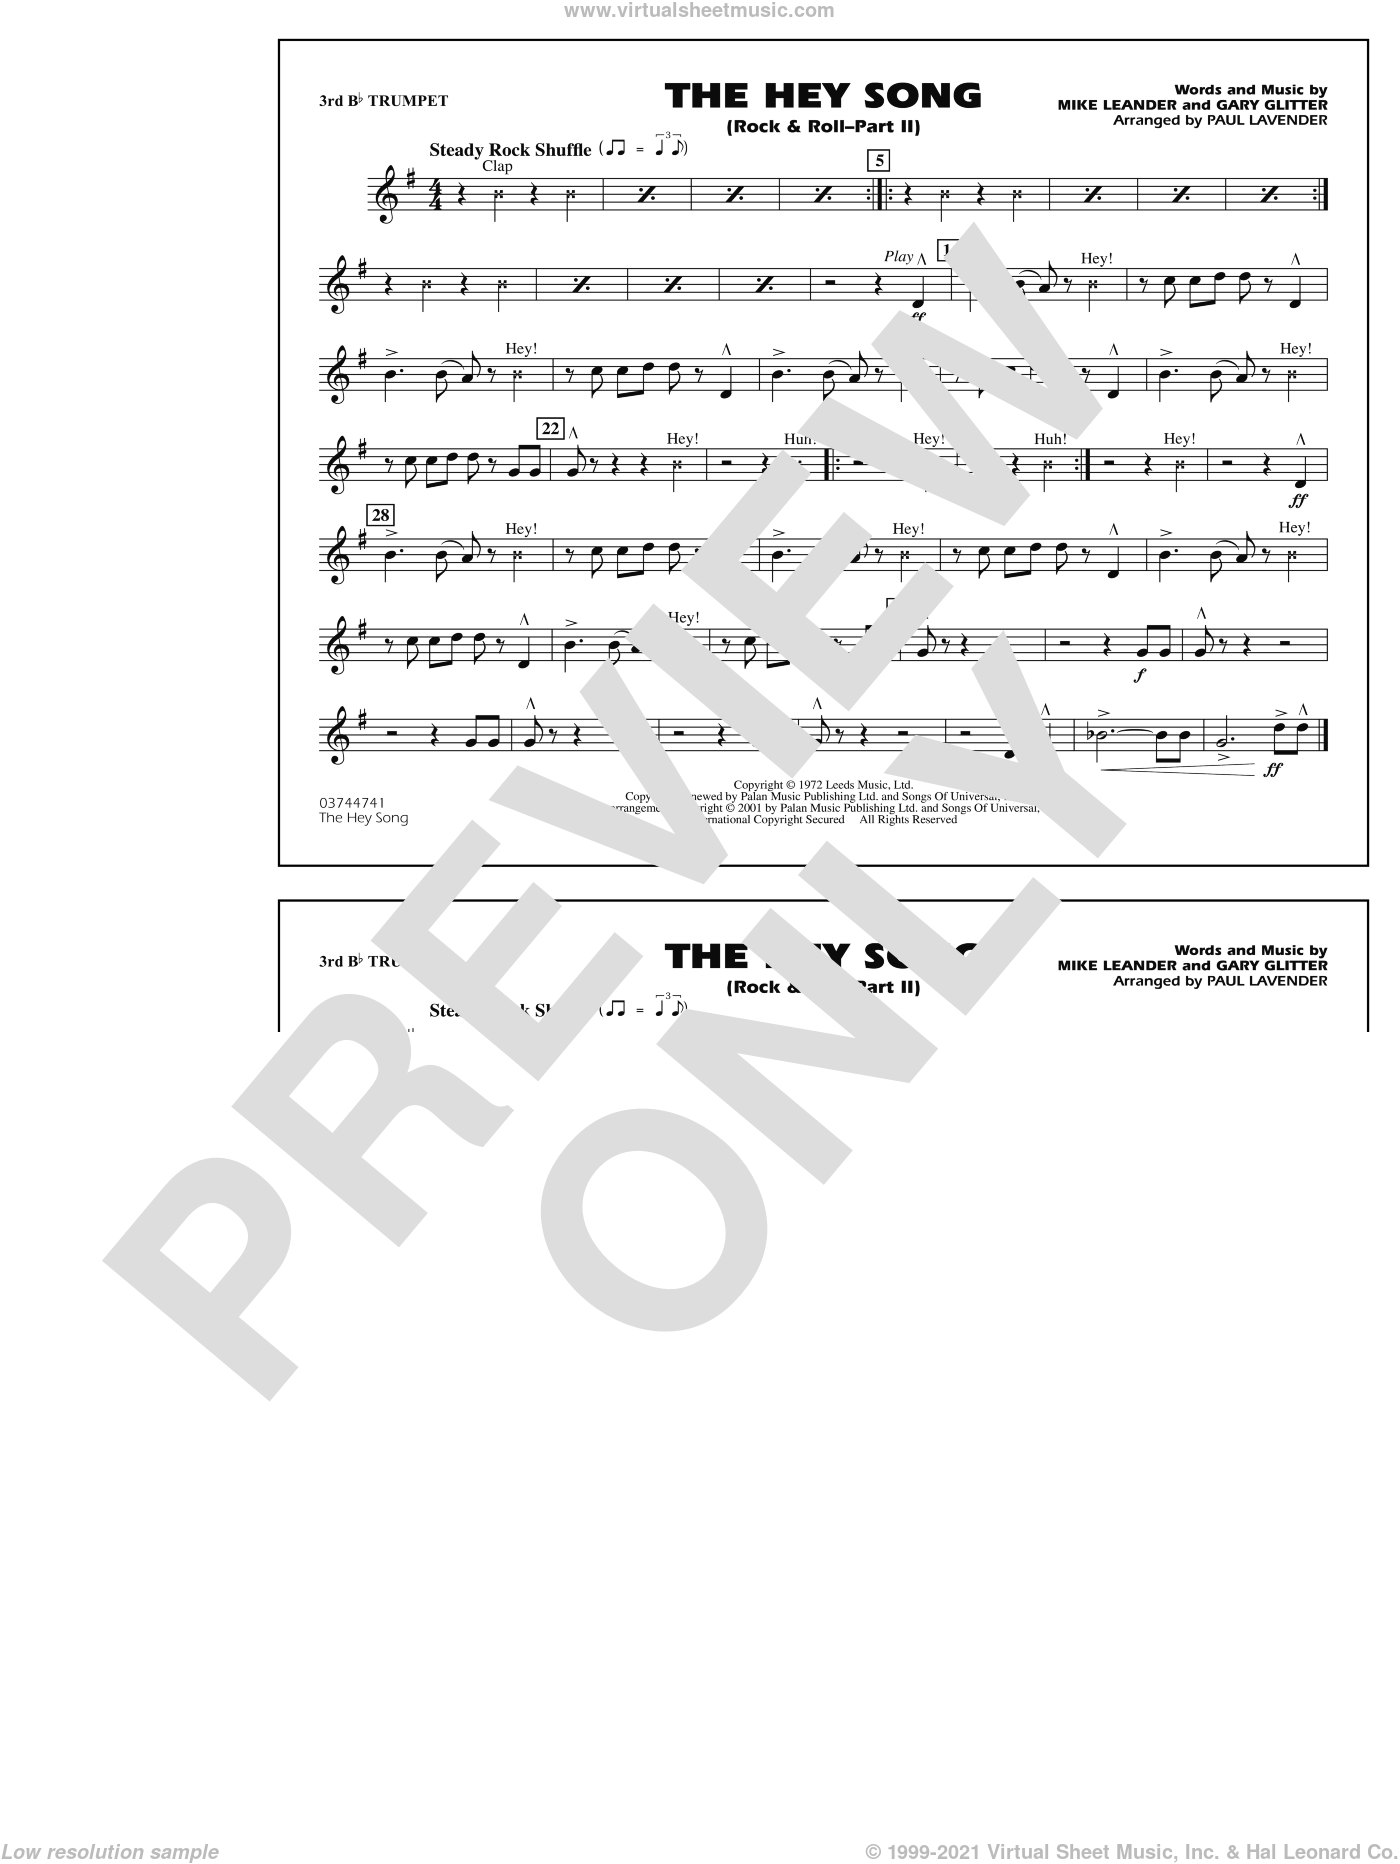 Rock and Roll, part ii (the hey song) sheet music for marching band (3rd Bb trumpet) by Mike Leander